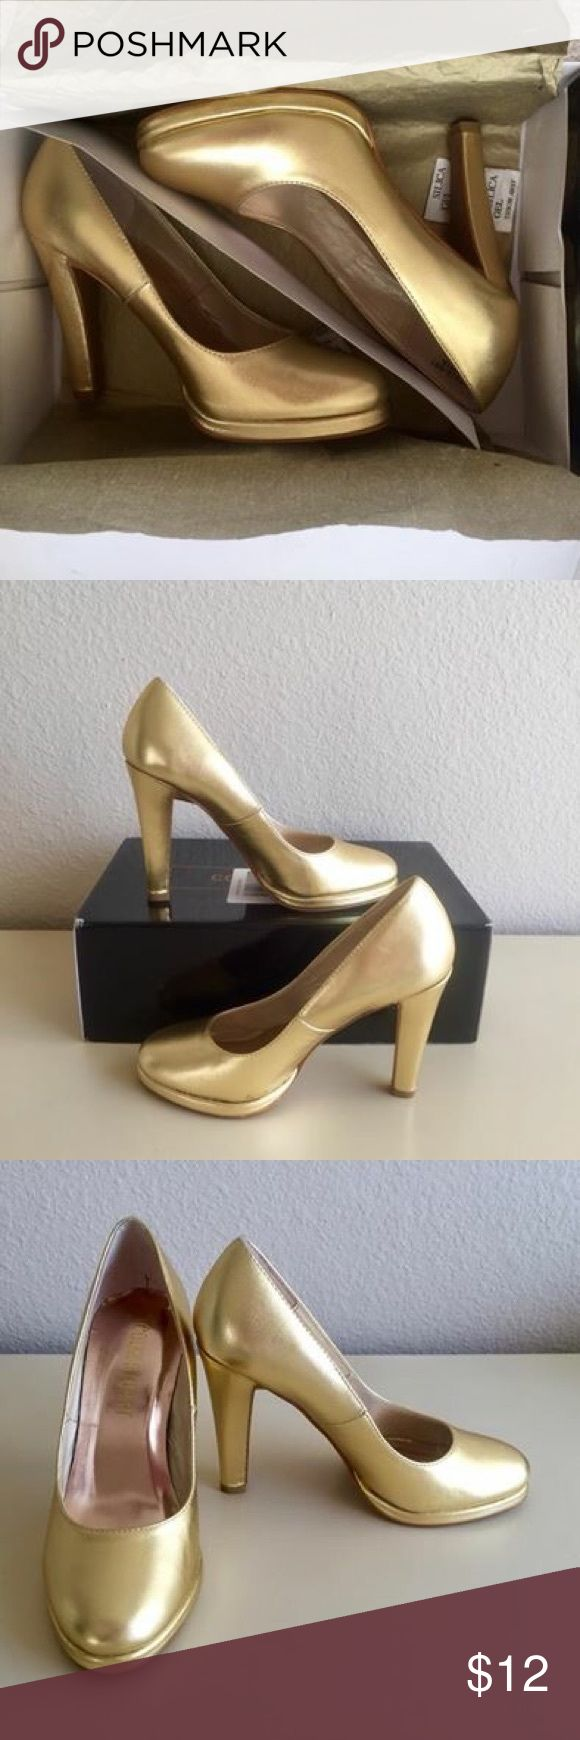 NWT Colin Stuart gold Pumps Heels - Moving Sale! Moving Sale!  Available until 1/31/2018. Size 5 gold pumps from Colin Stuart.  4 in heels.  Brand new with box.  All items come from pet and smoke free house.  Perfect for your parties or evening out!  Have several other pairs of heels & wedges from Nine West, Colin Stuart, Naturalizer, Franco Sarto etc. Selling individually or all for $95.  Downsizing my closet for move. Please check out my other similar sized items for sale. Bundle, save…